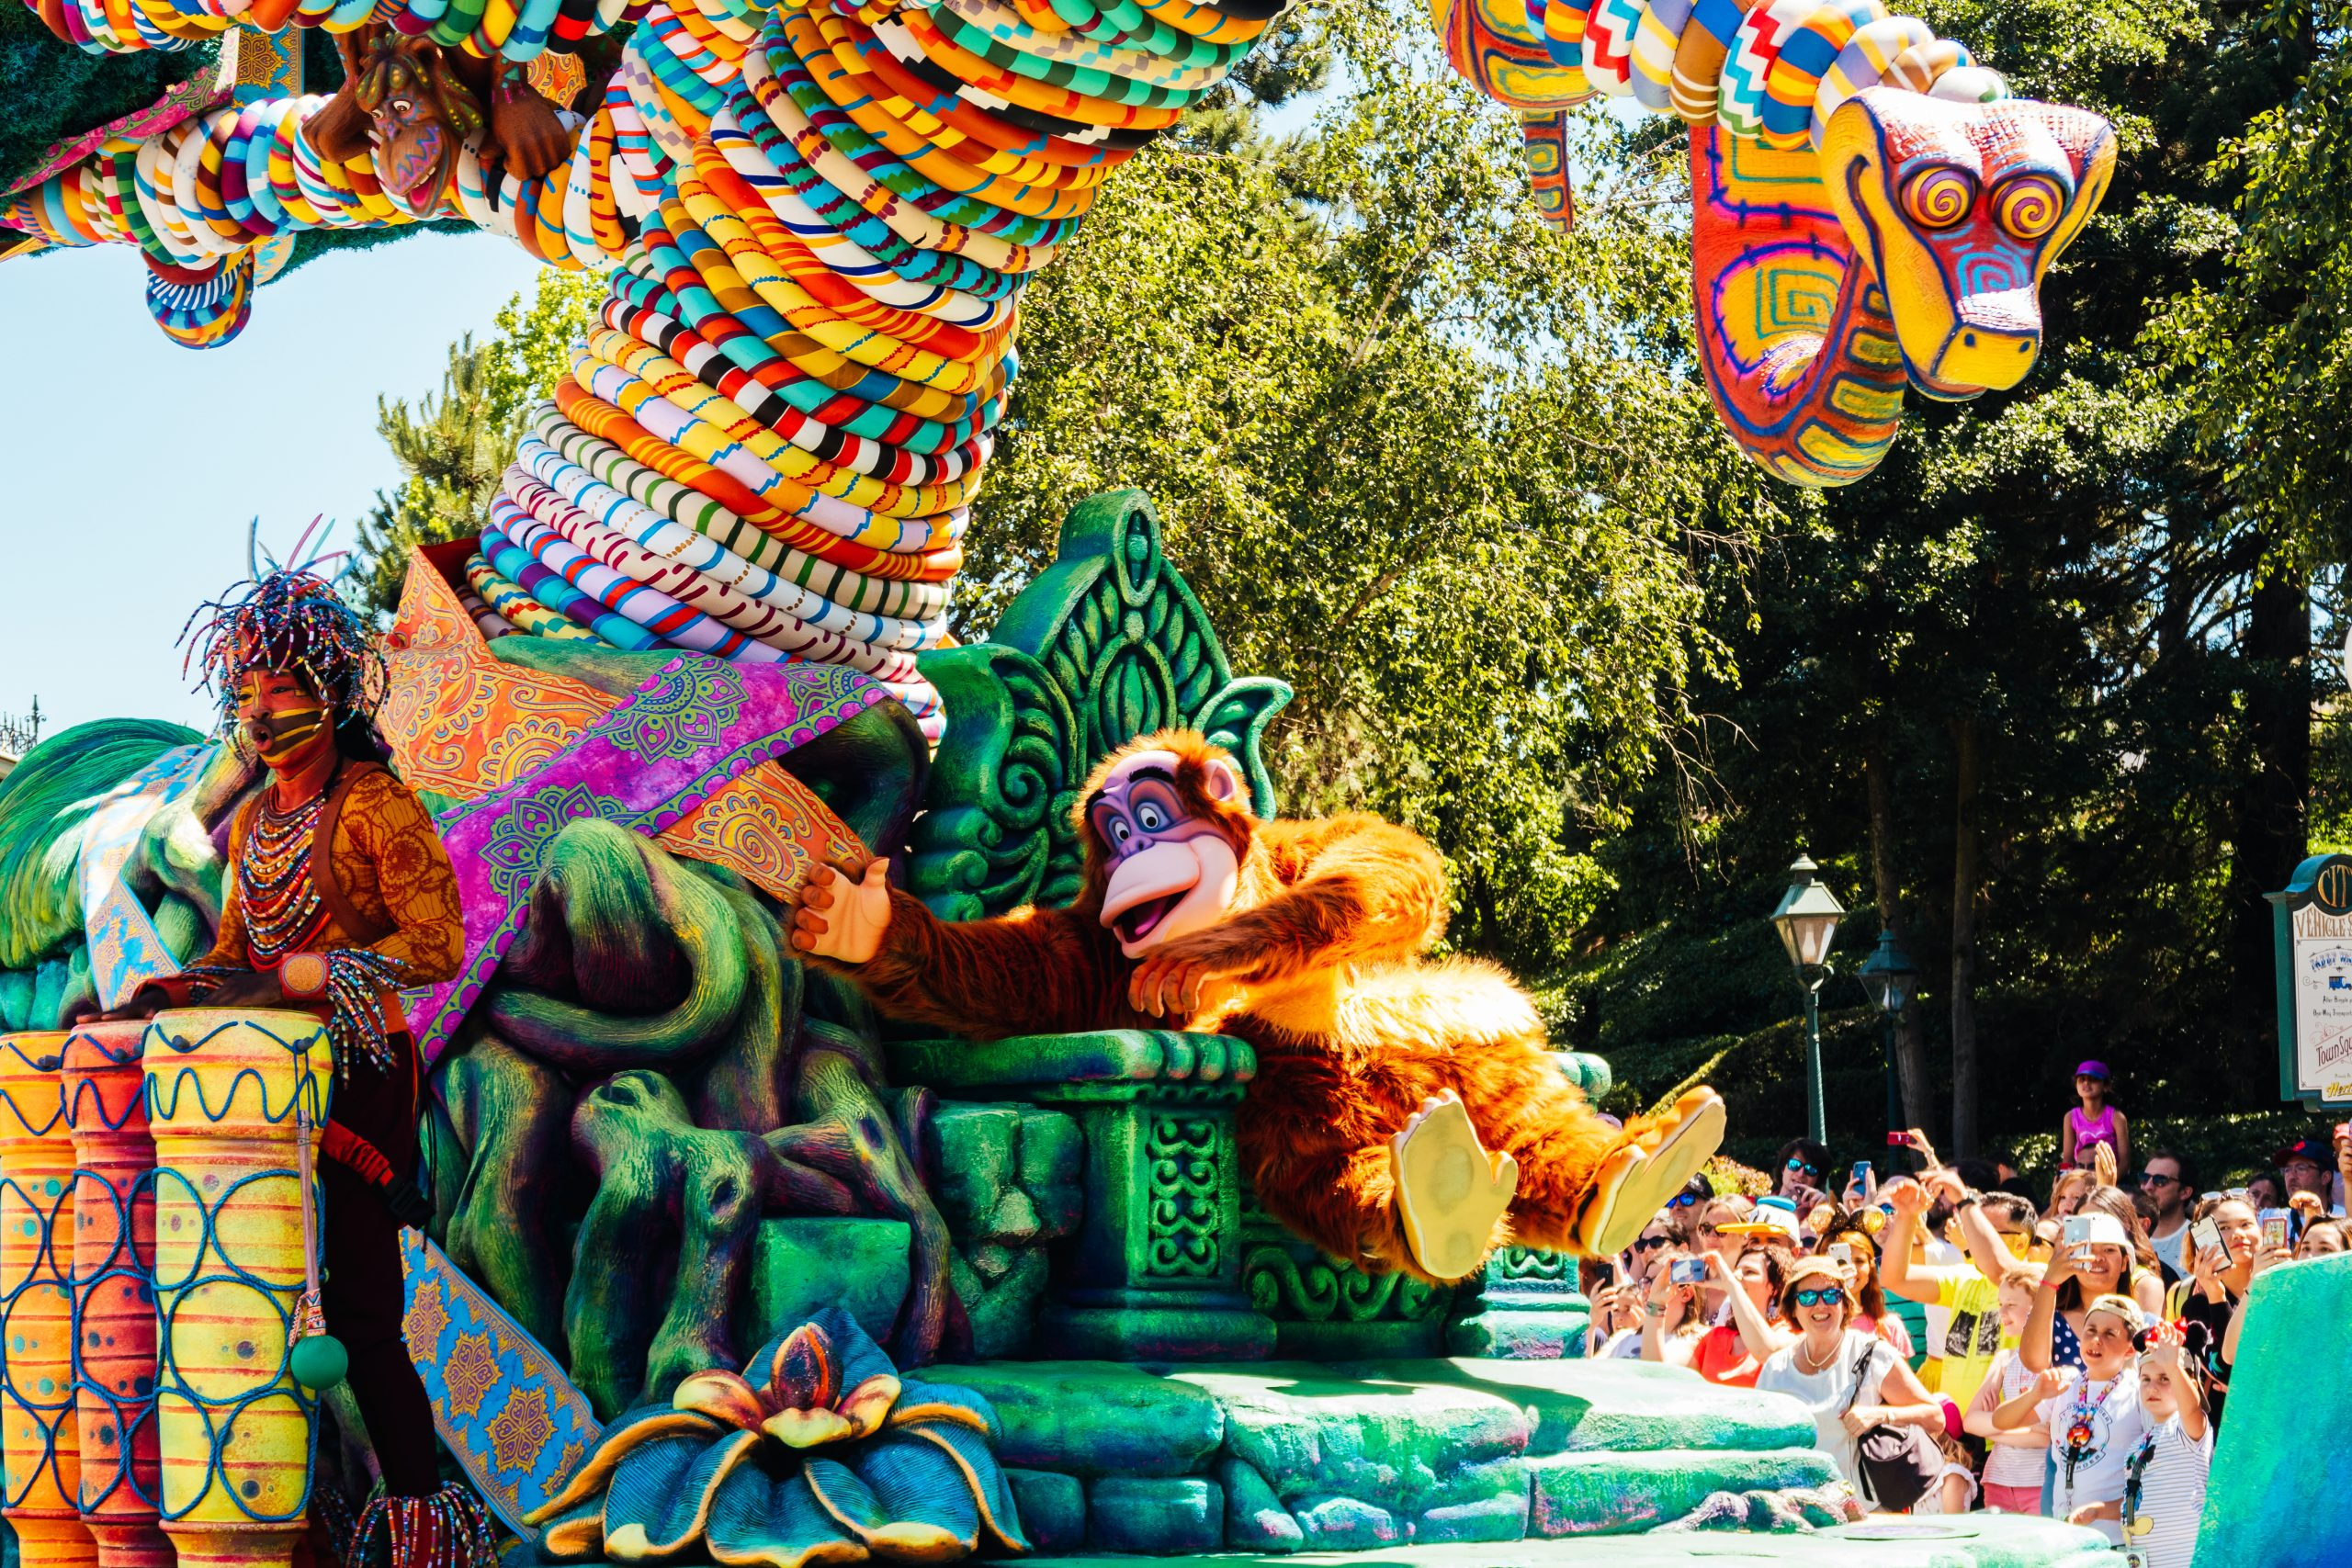 King Louie during Disneyland Paris Jungle Jive parade